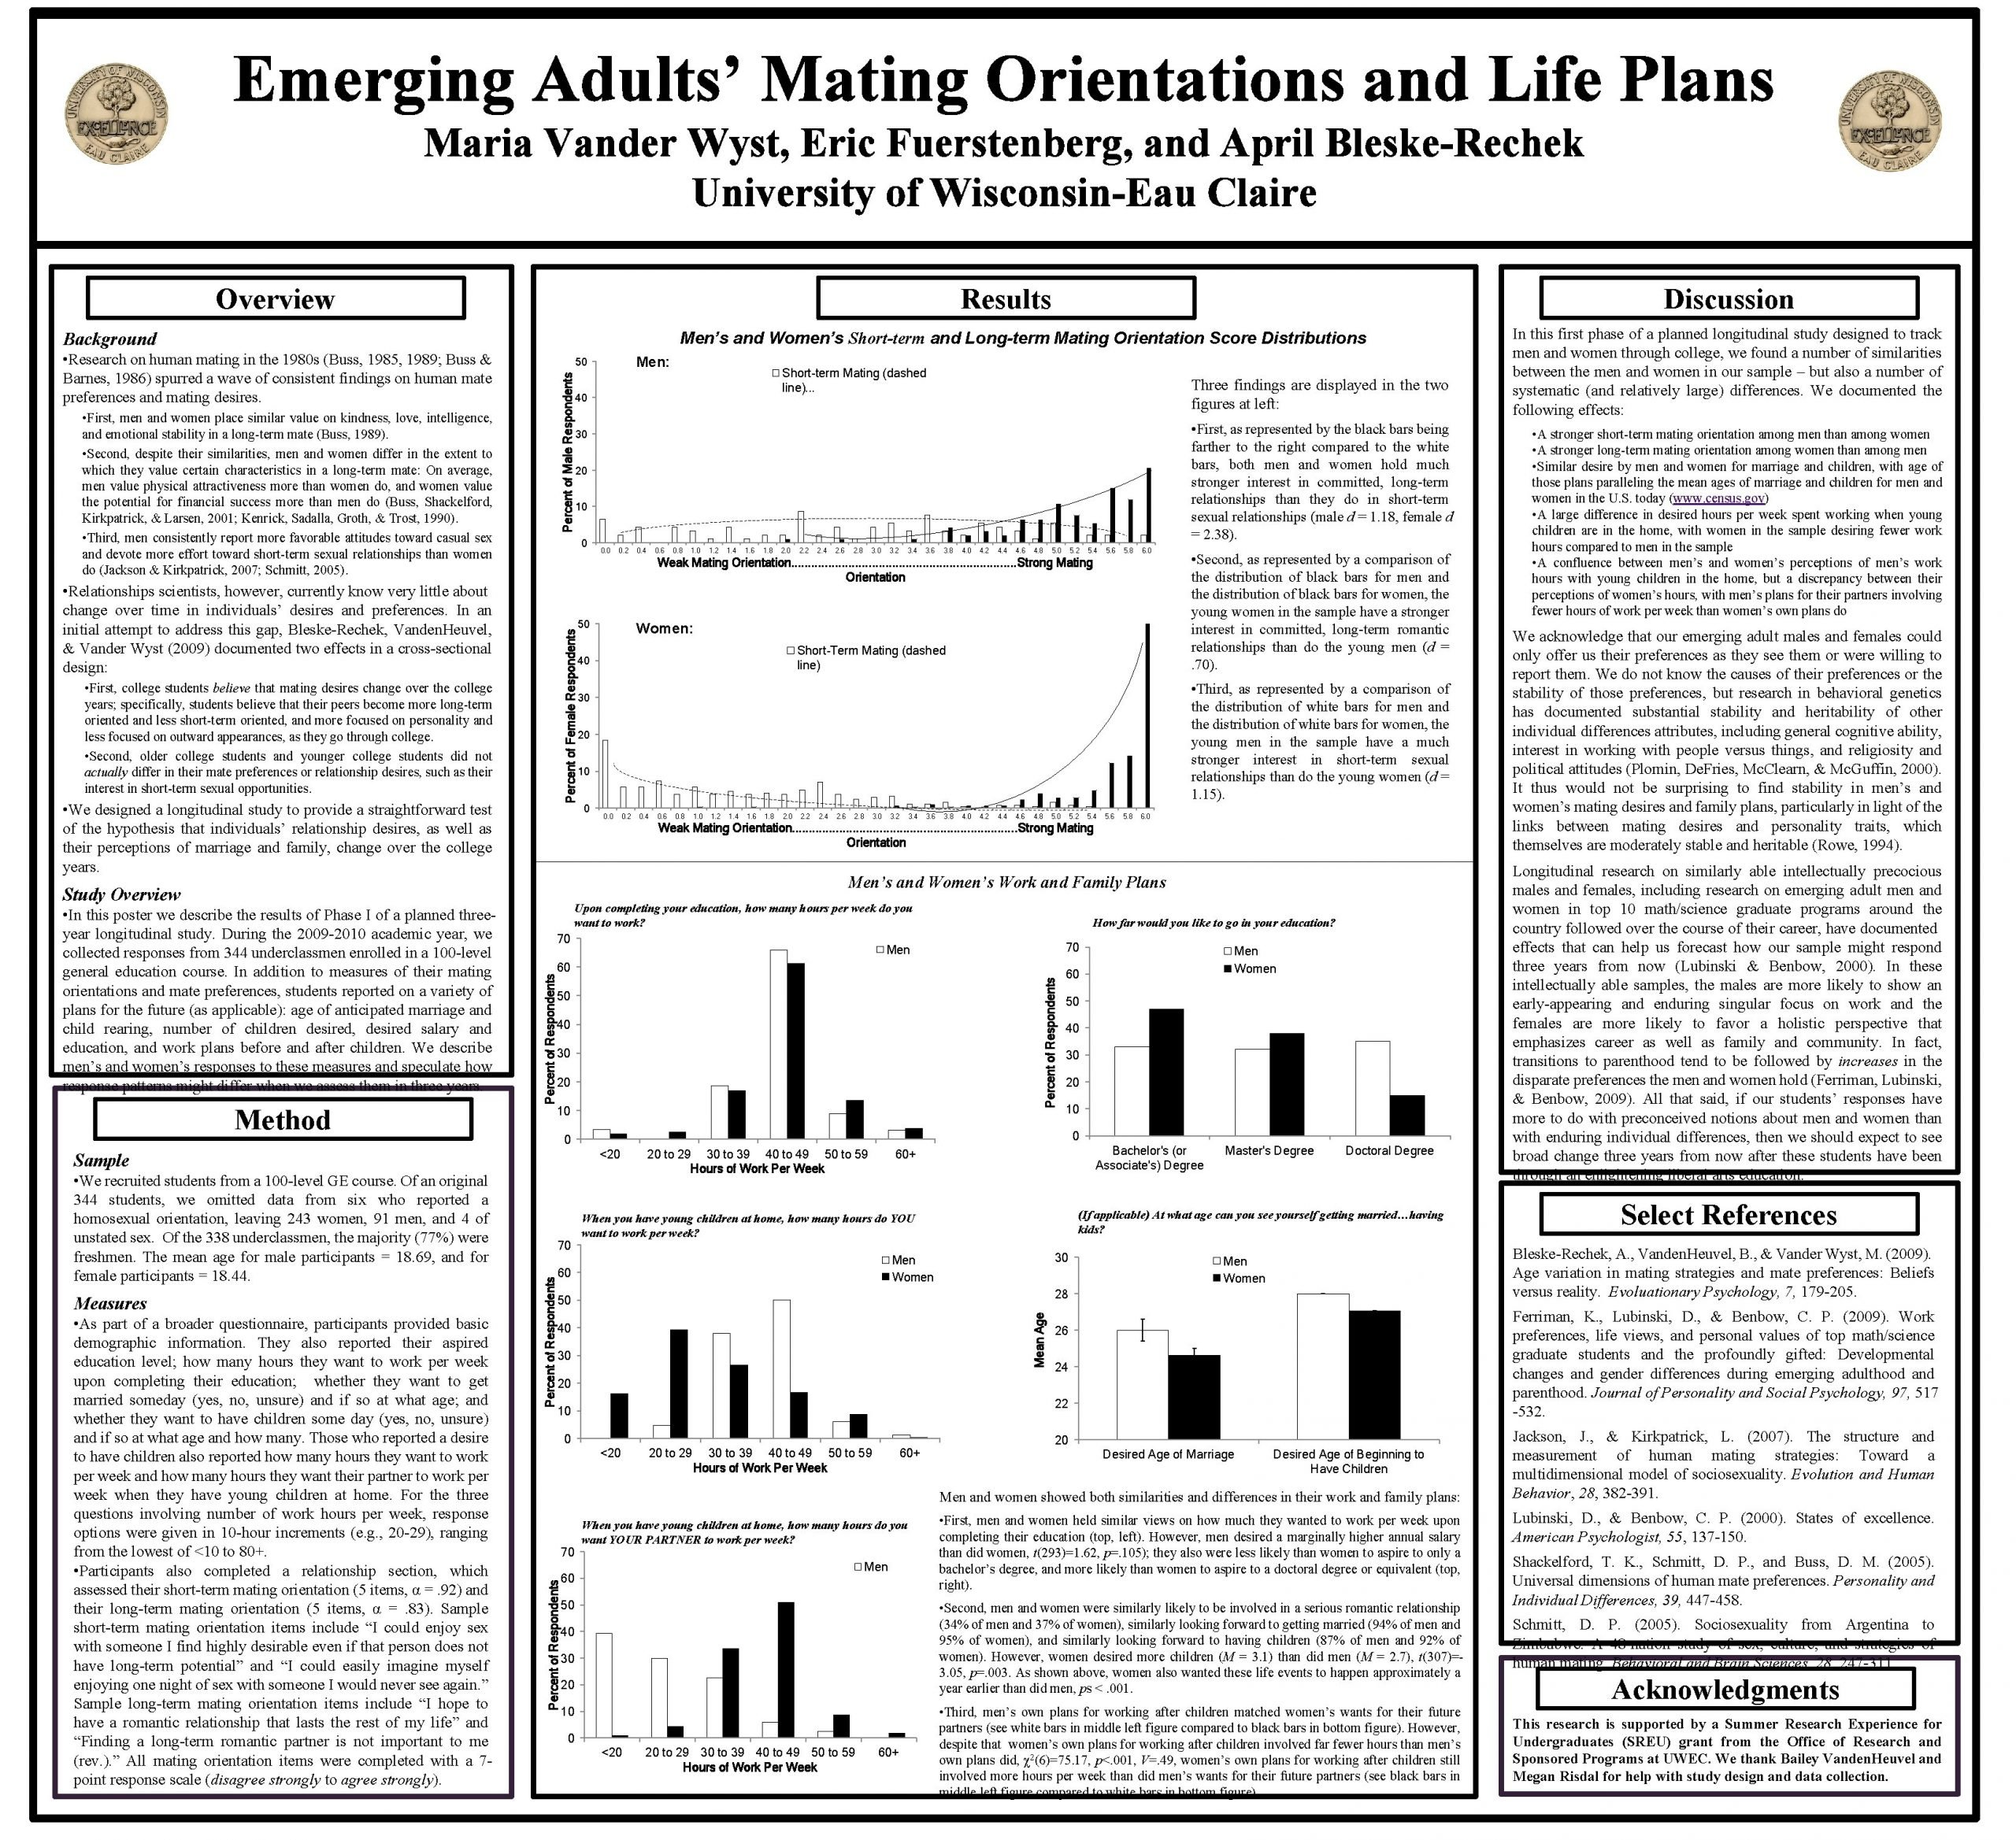 Emerging Adults Mating Orientations and Life Plans Maria